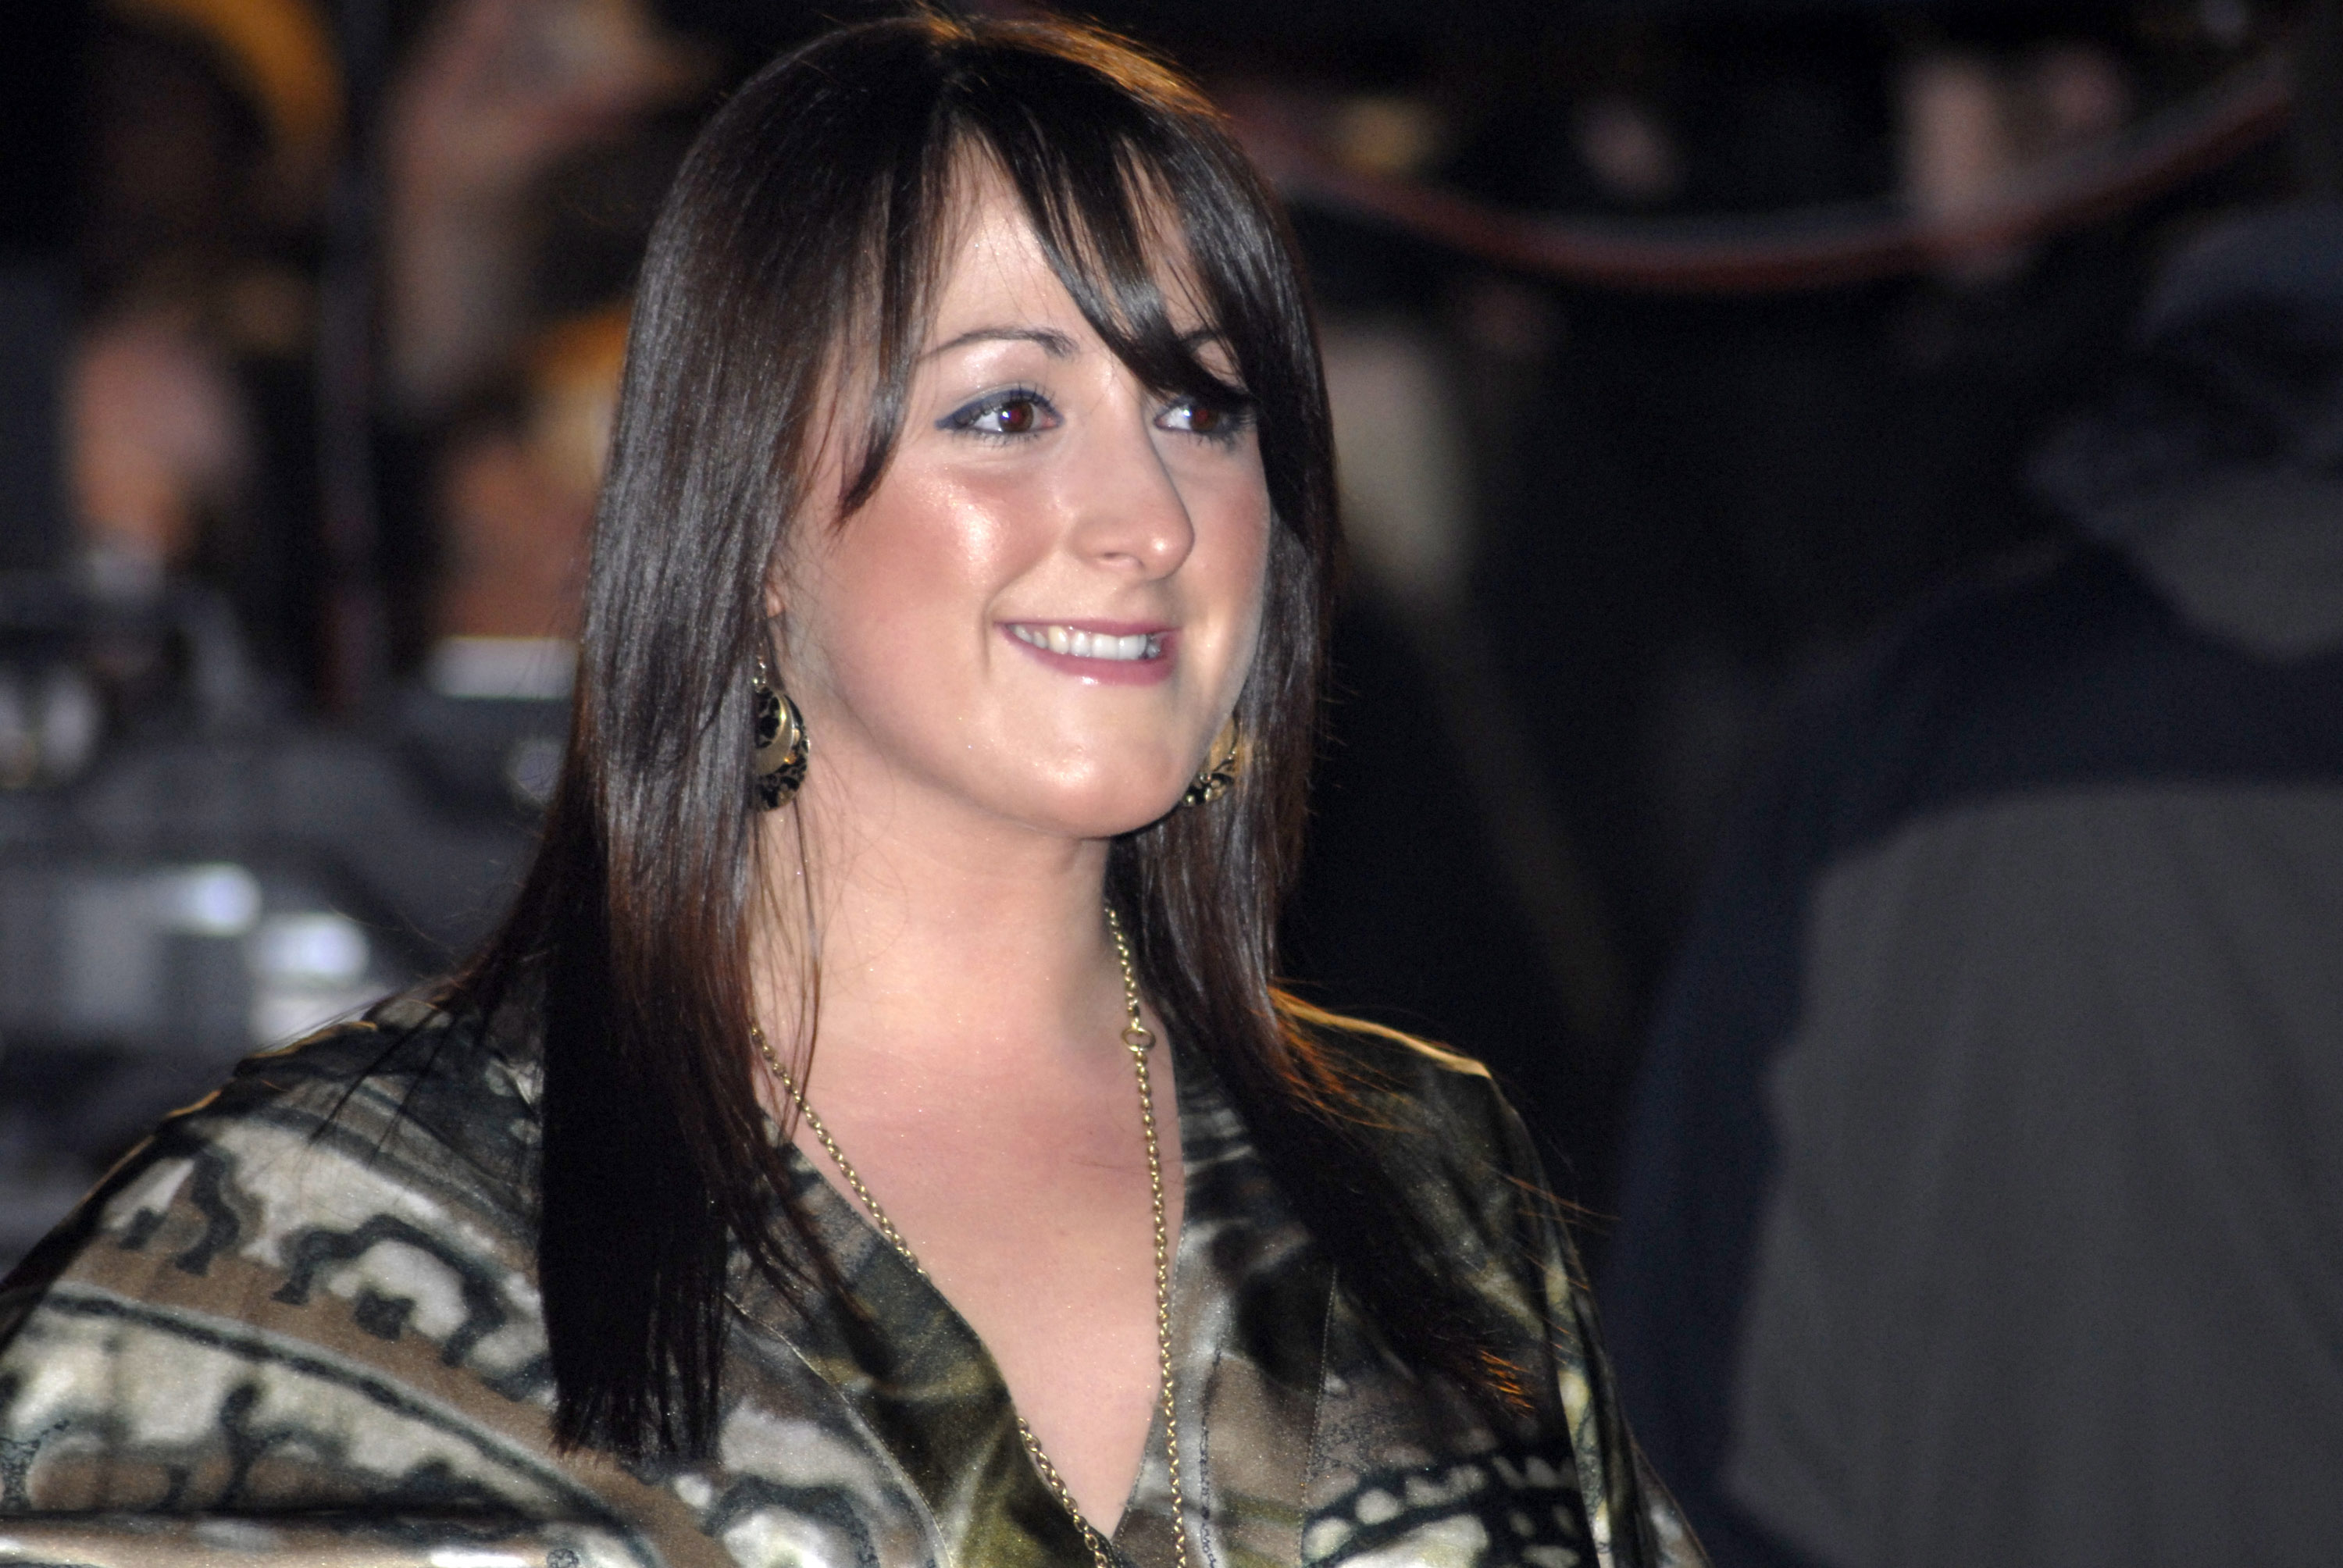 EastEnders star Natalie Cassidy's intimate pictures leaked online